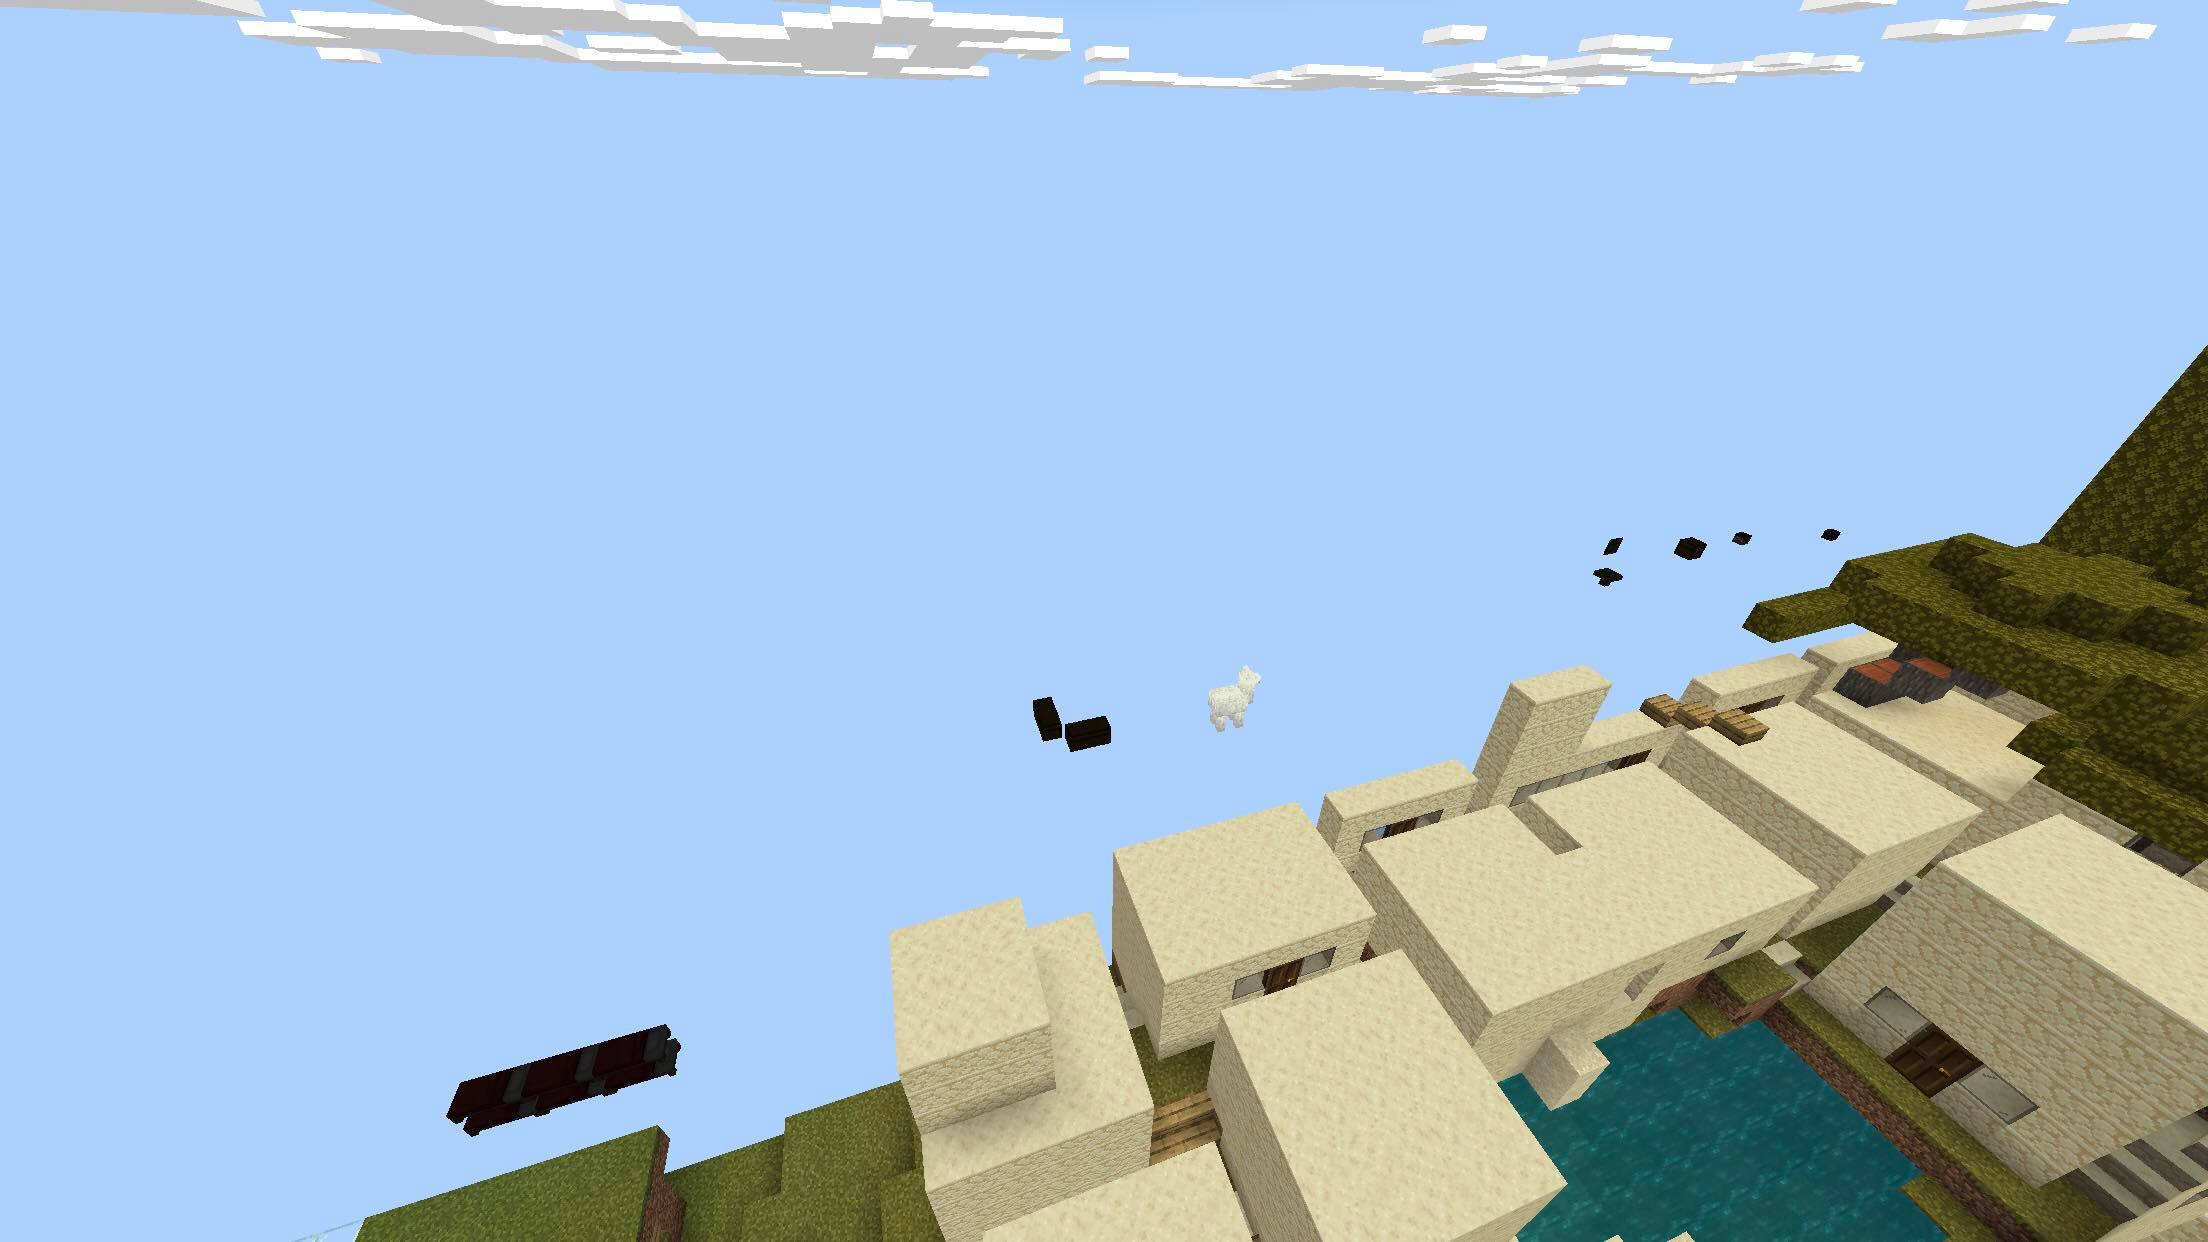 MCPE-27797] Old world types are getting cut off and can only